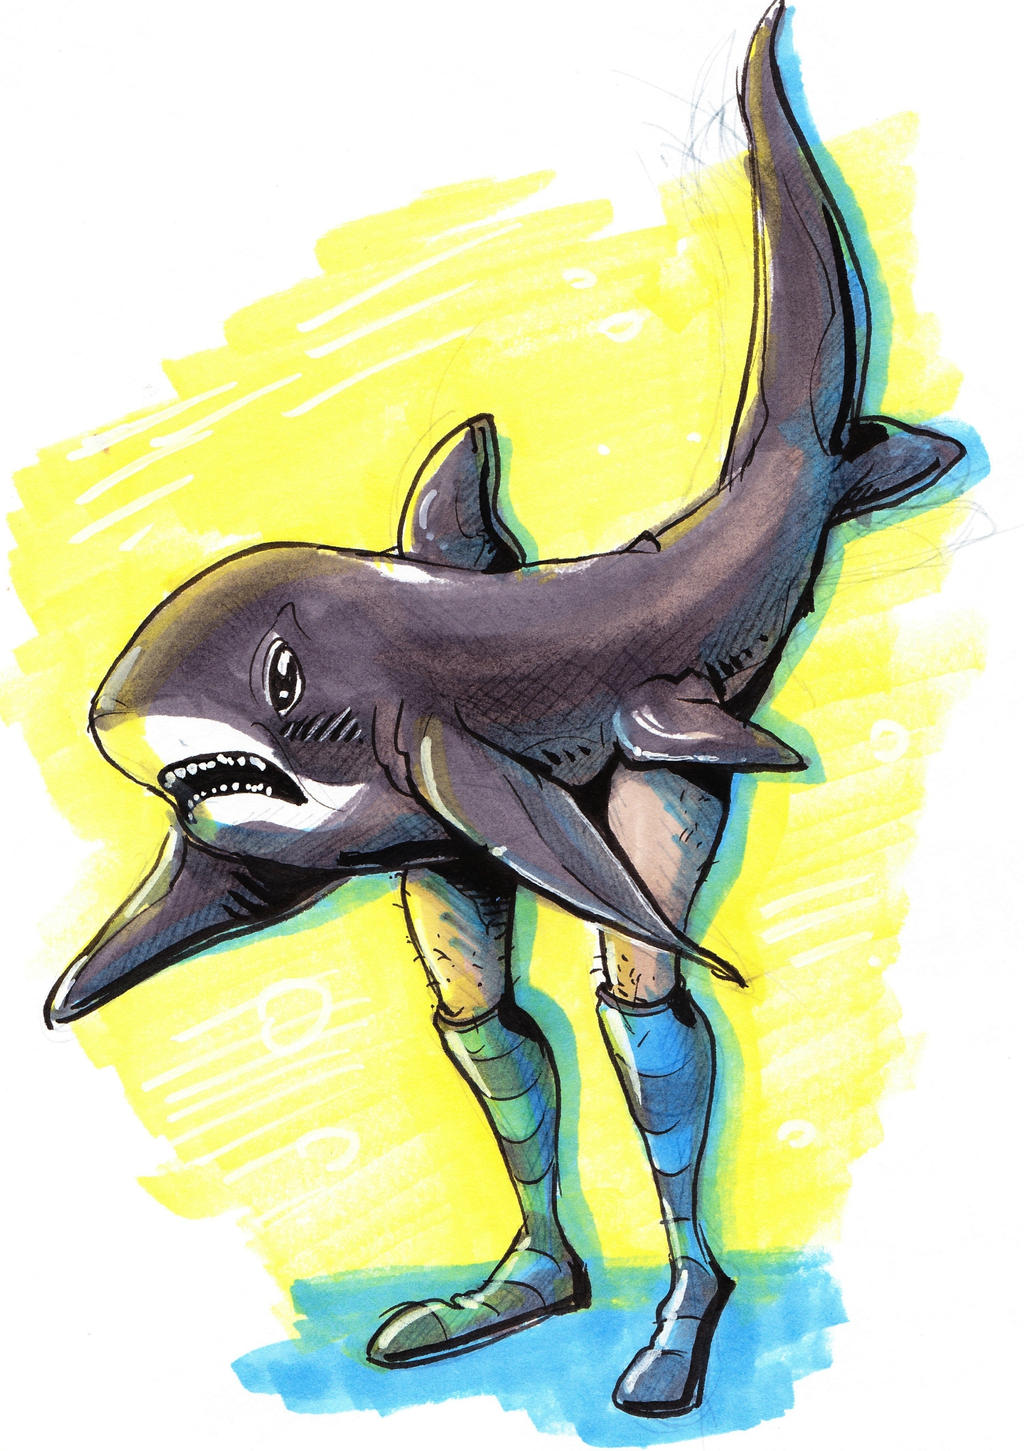 Shark with Legs by mrboogers on DeviantArt